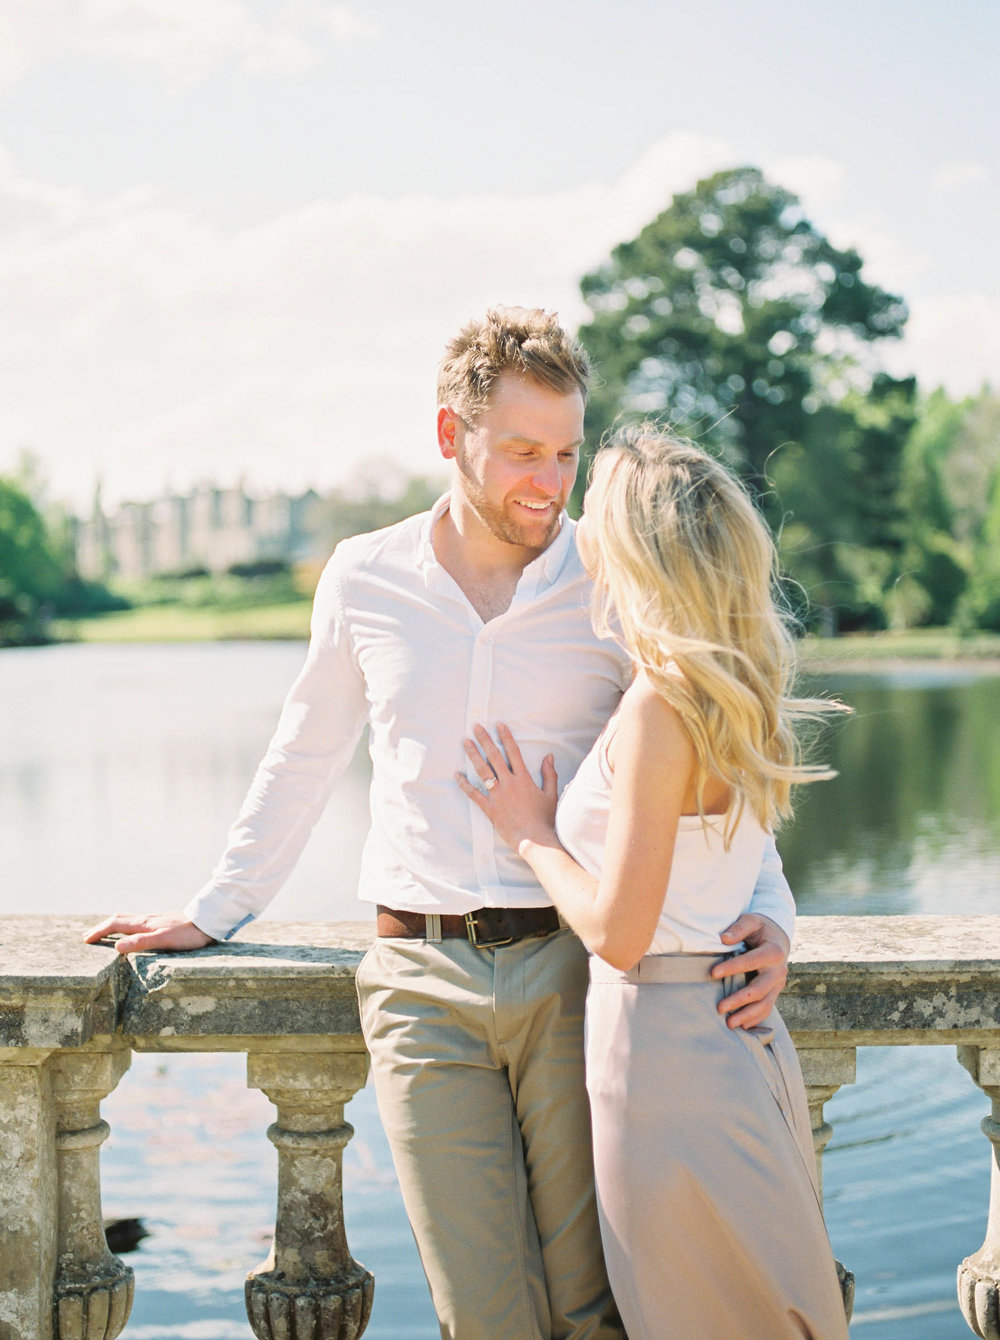 Amy O'Boyle Photography- Destination & UK Fine Art Film Wedding Photographer- Sheffield Park Garden National Trust Spring Engagement Shoot-29.jpg